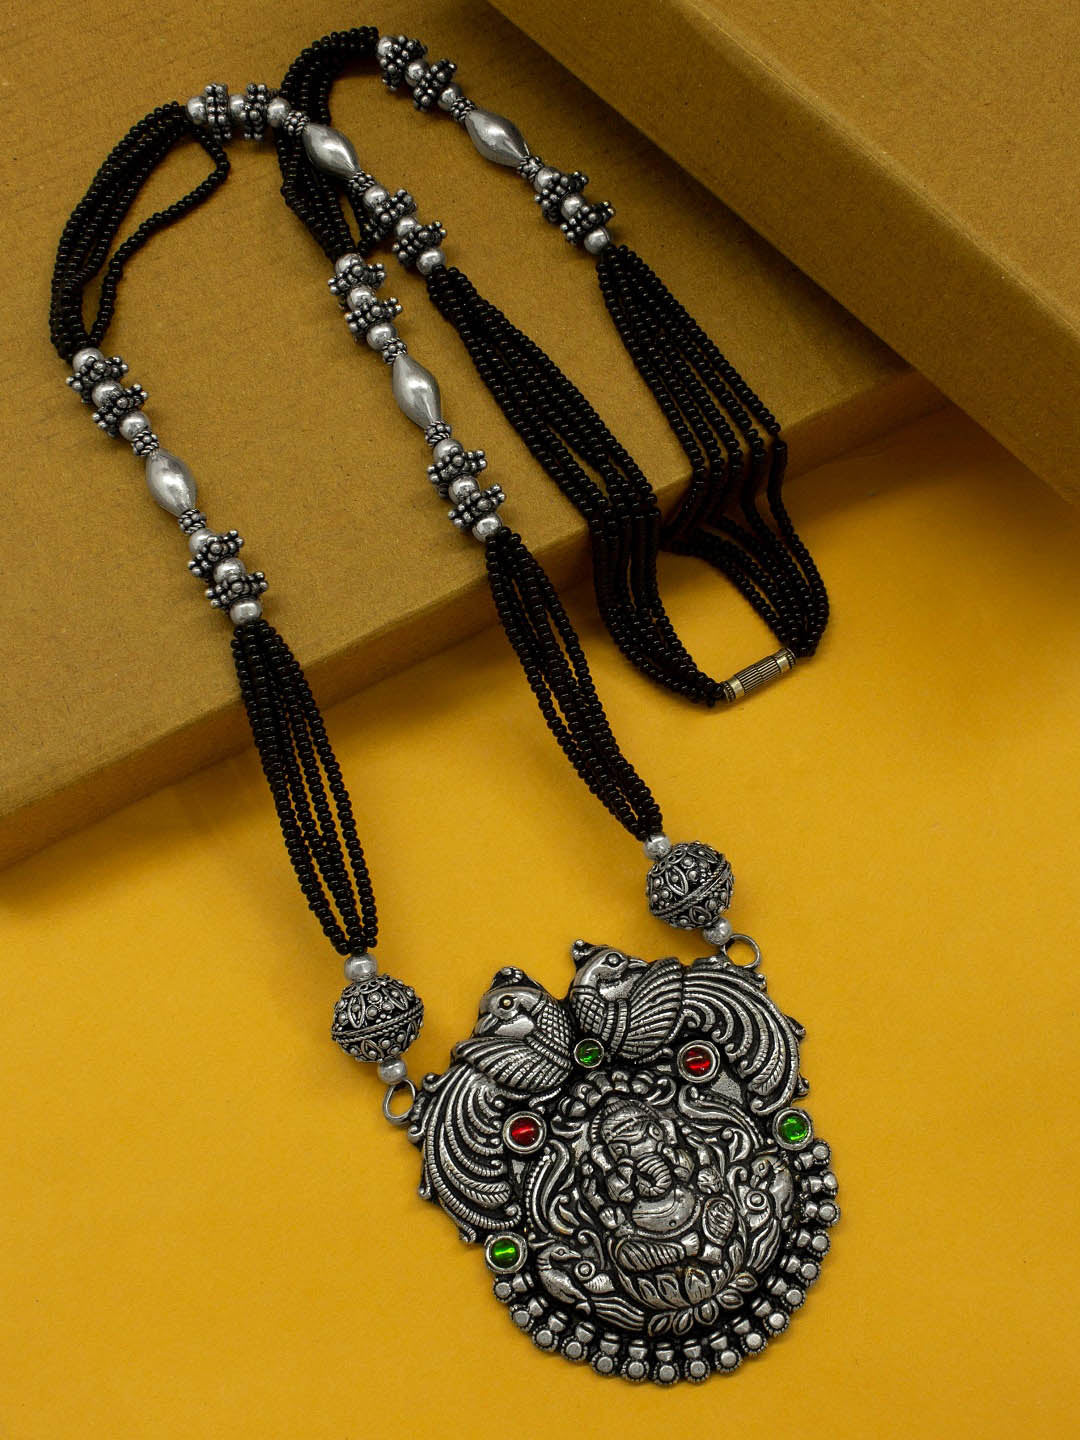 Oxidized German Silver Ganesh Design Pendant Studded With Black Color Mangalsutra Beads Long Necklace-OXIDIZED-Mangalsutra